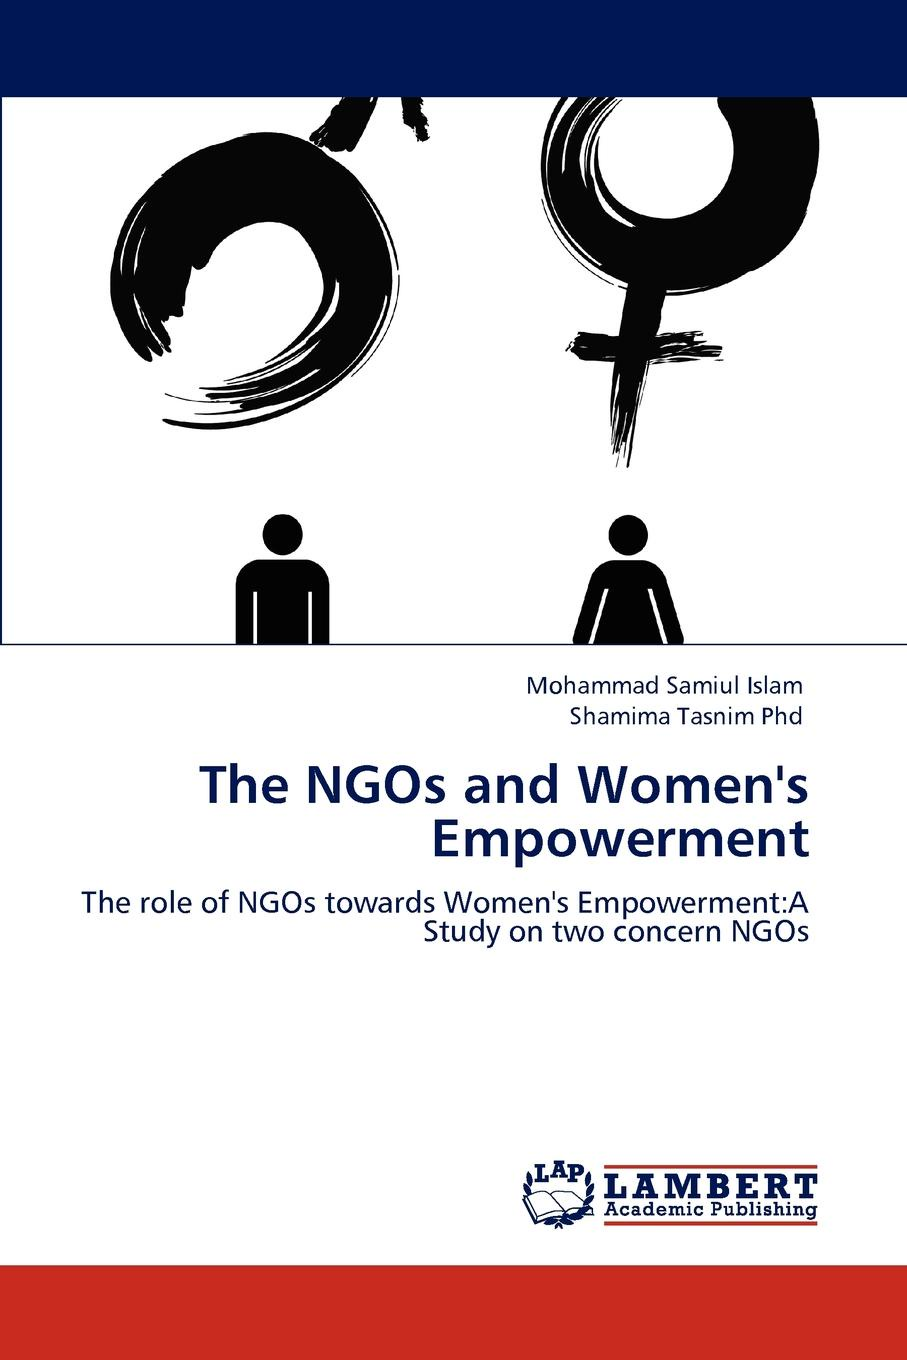 Mohammad Samiul Islam, Shamima Tasnim Phd The NGOs and Women.s Empowerment amjad reba perception about ngo contribution towards education